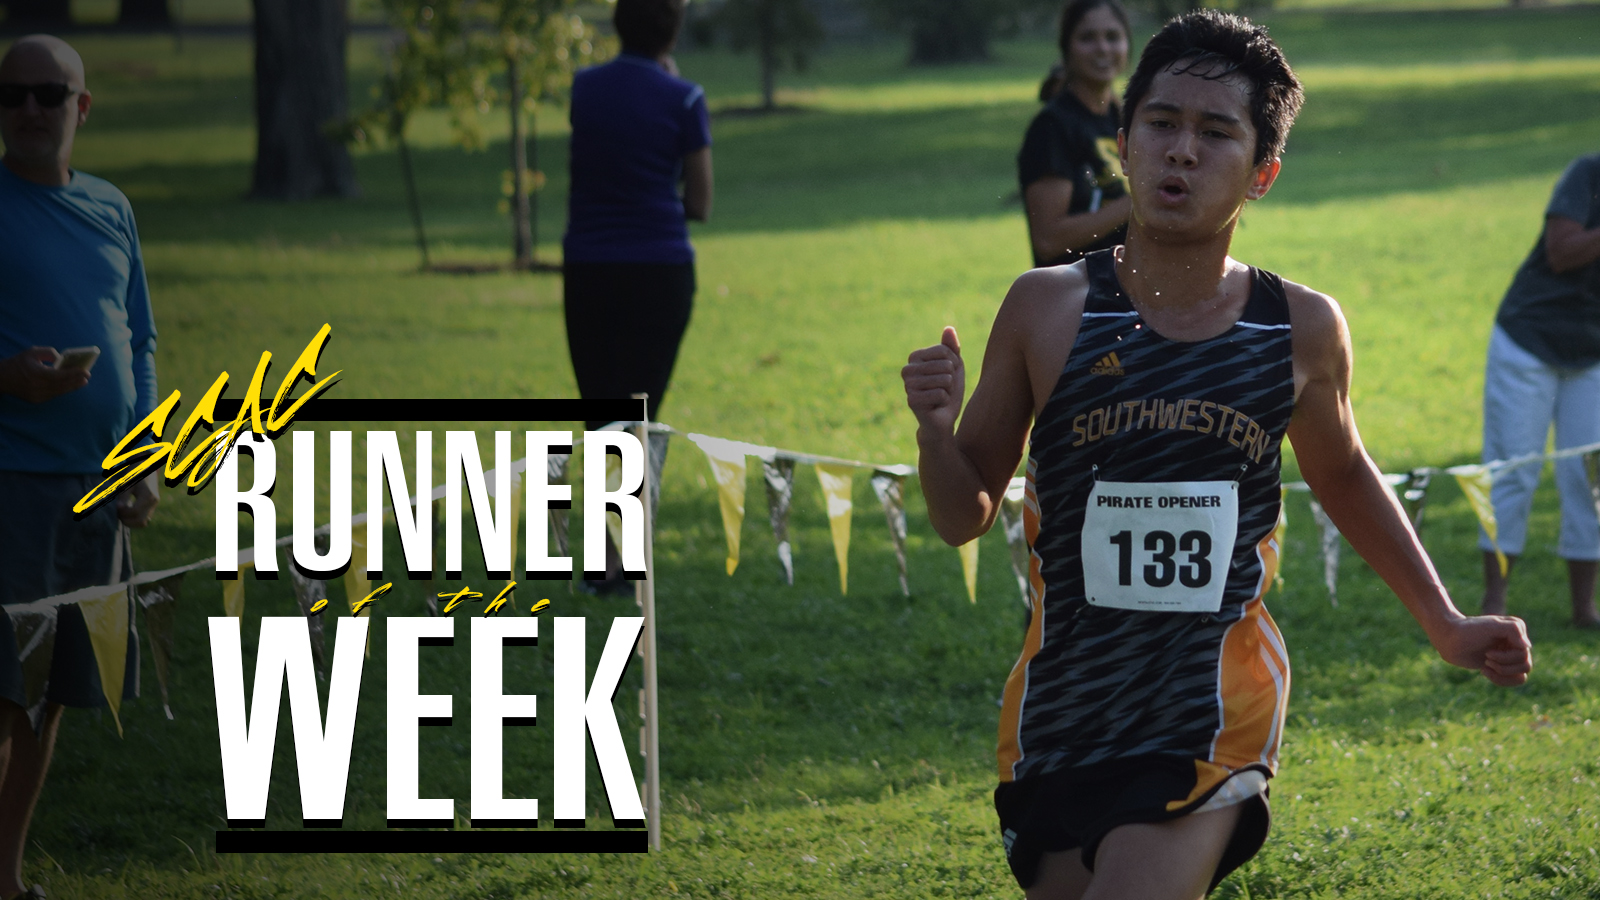 Im Takes Home Third SCAC Runner of the Week